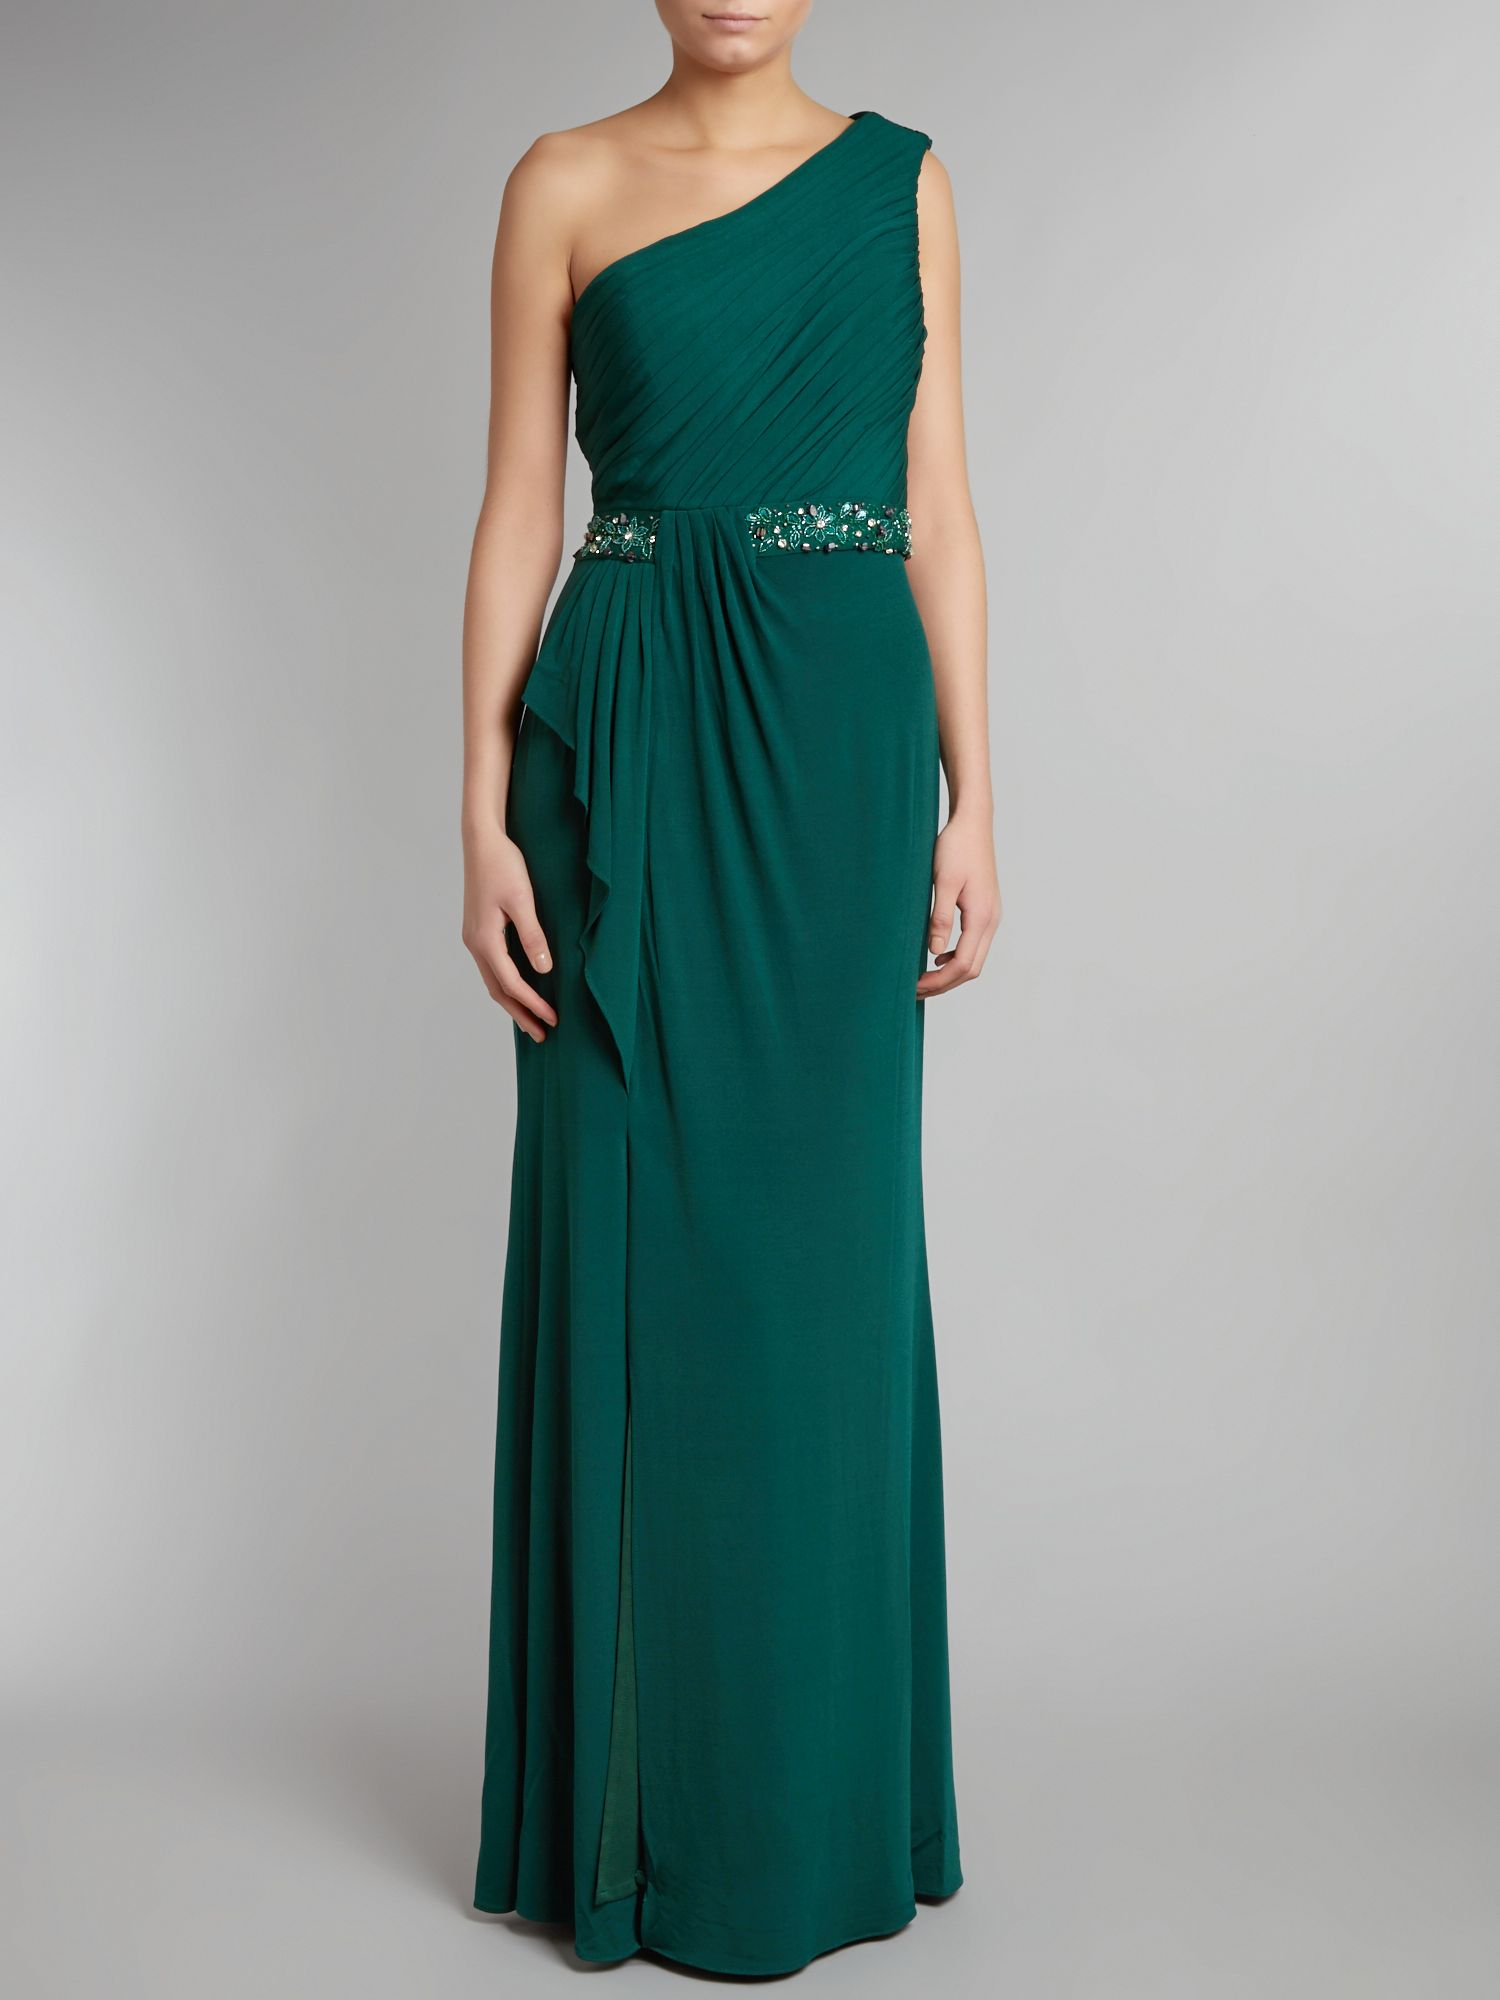 One shoulder long beaded dress